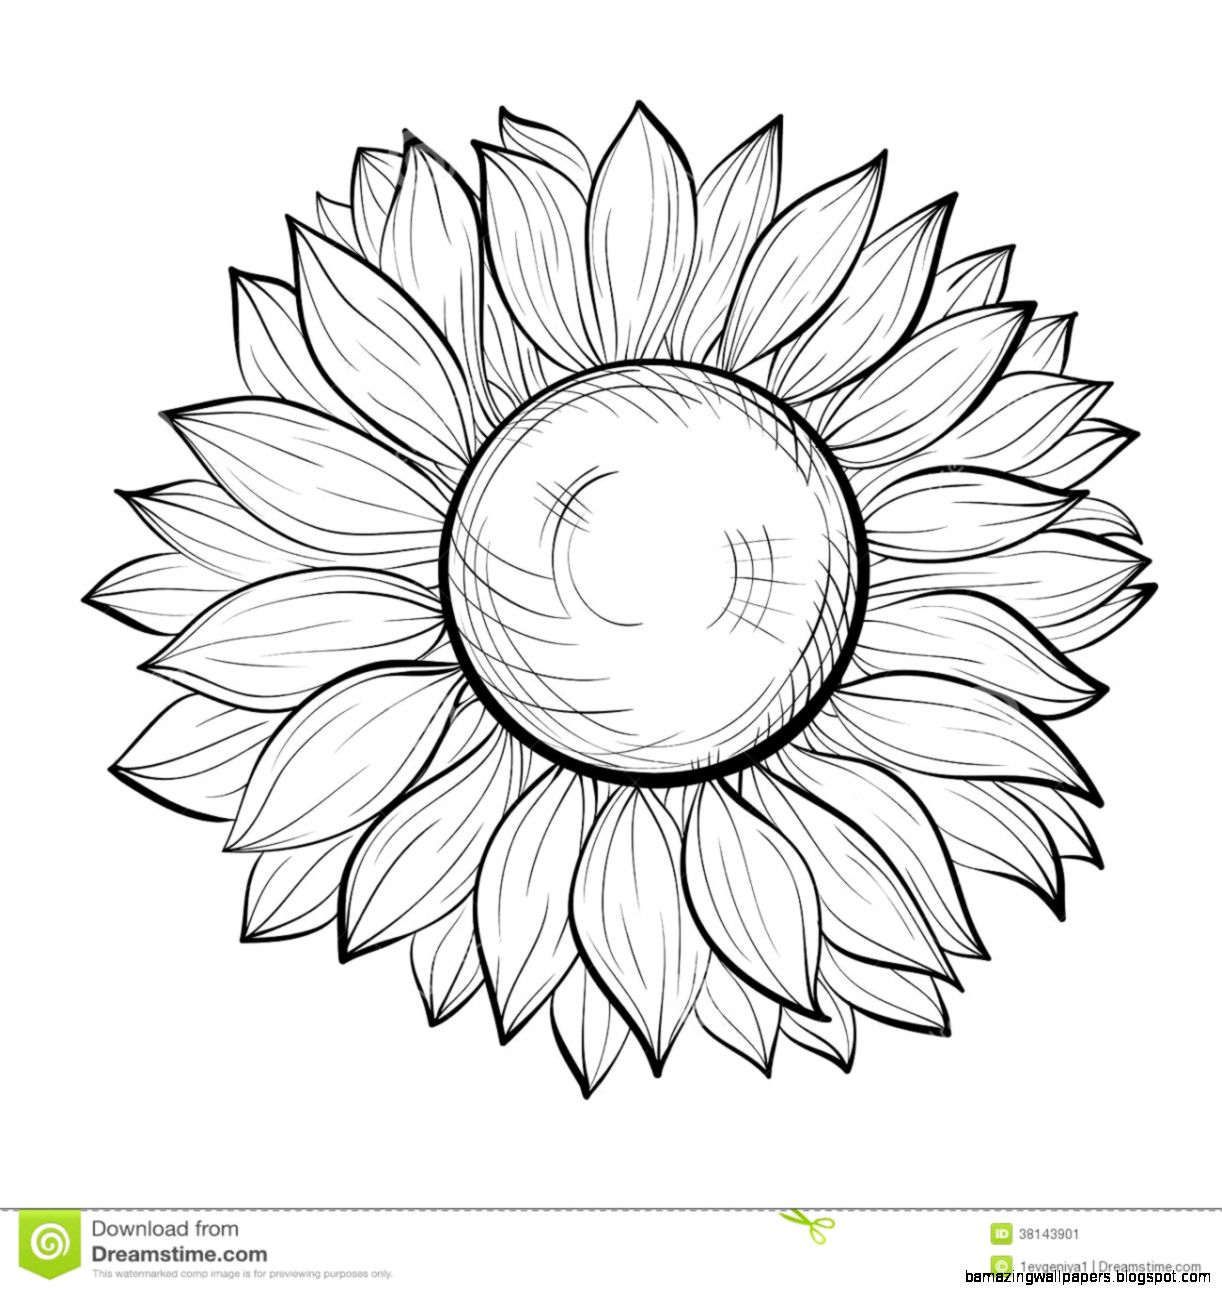 1222x1292 Sunflower Drawing Black And White Amazing Wallpapers